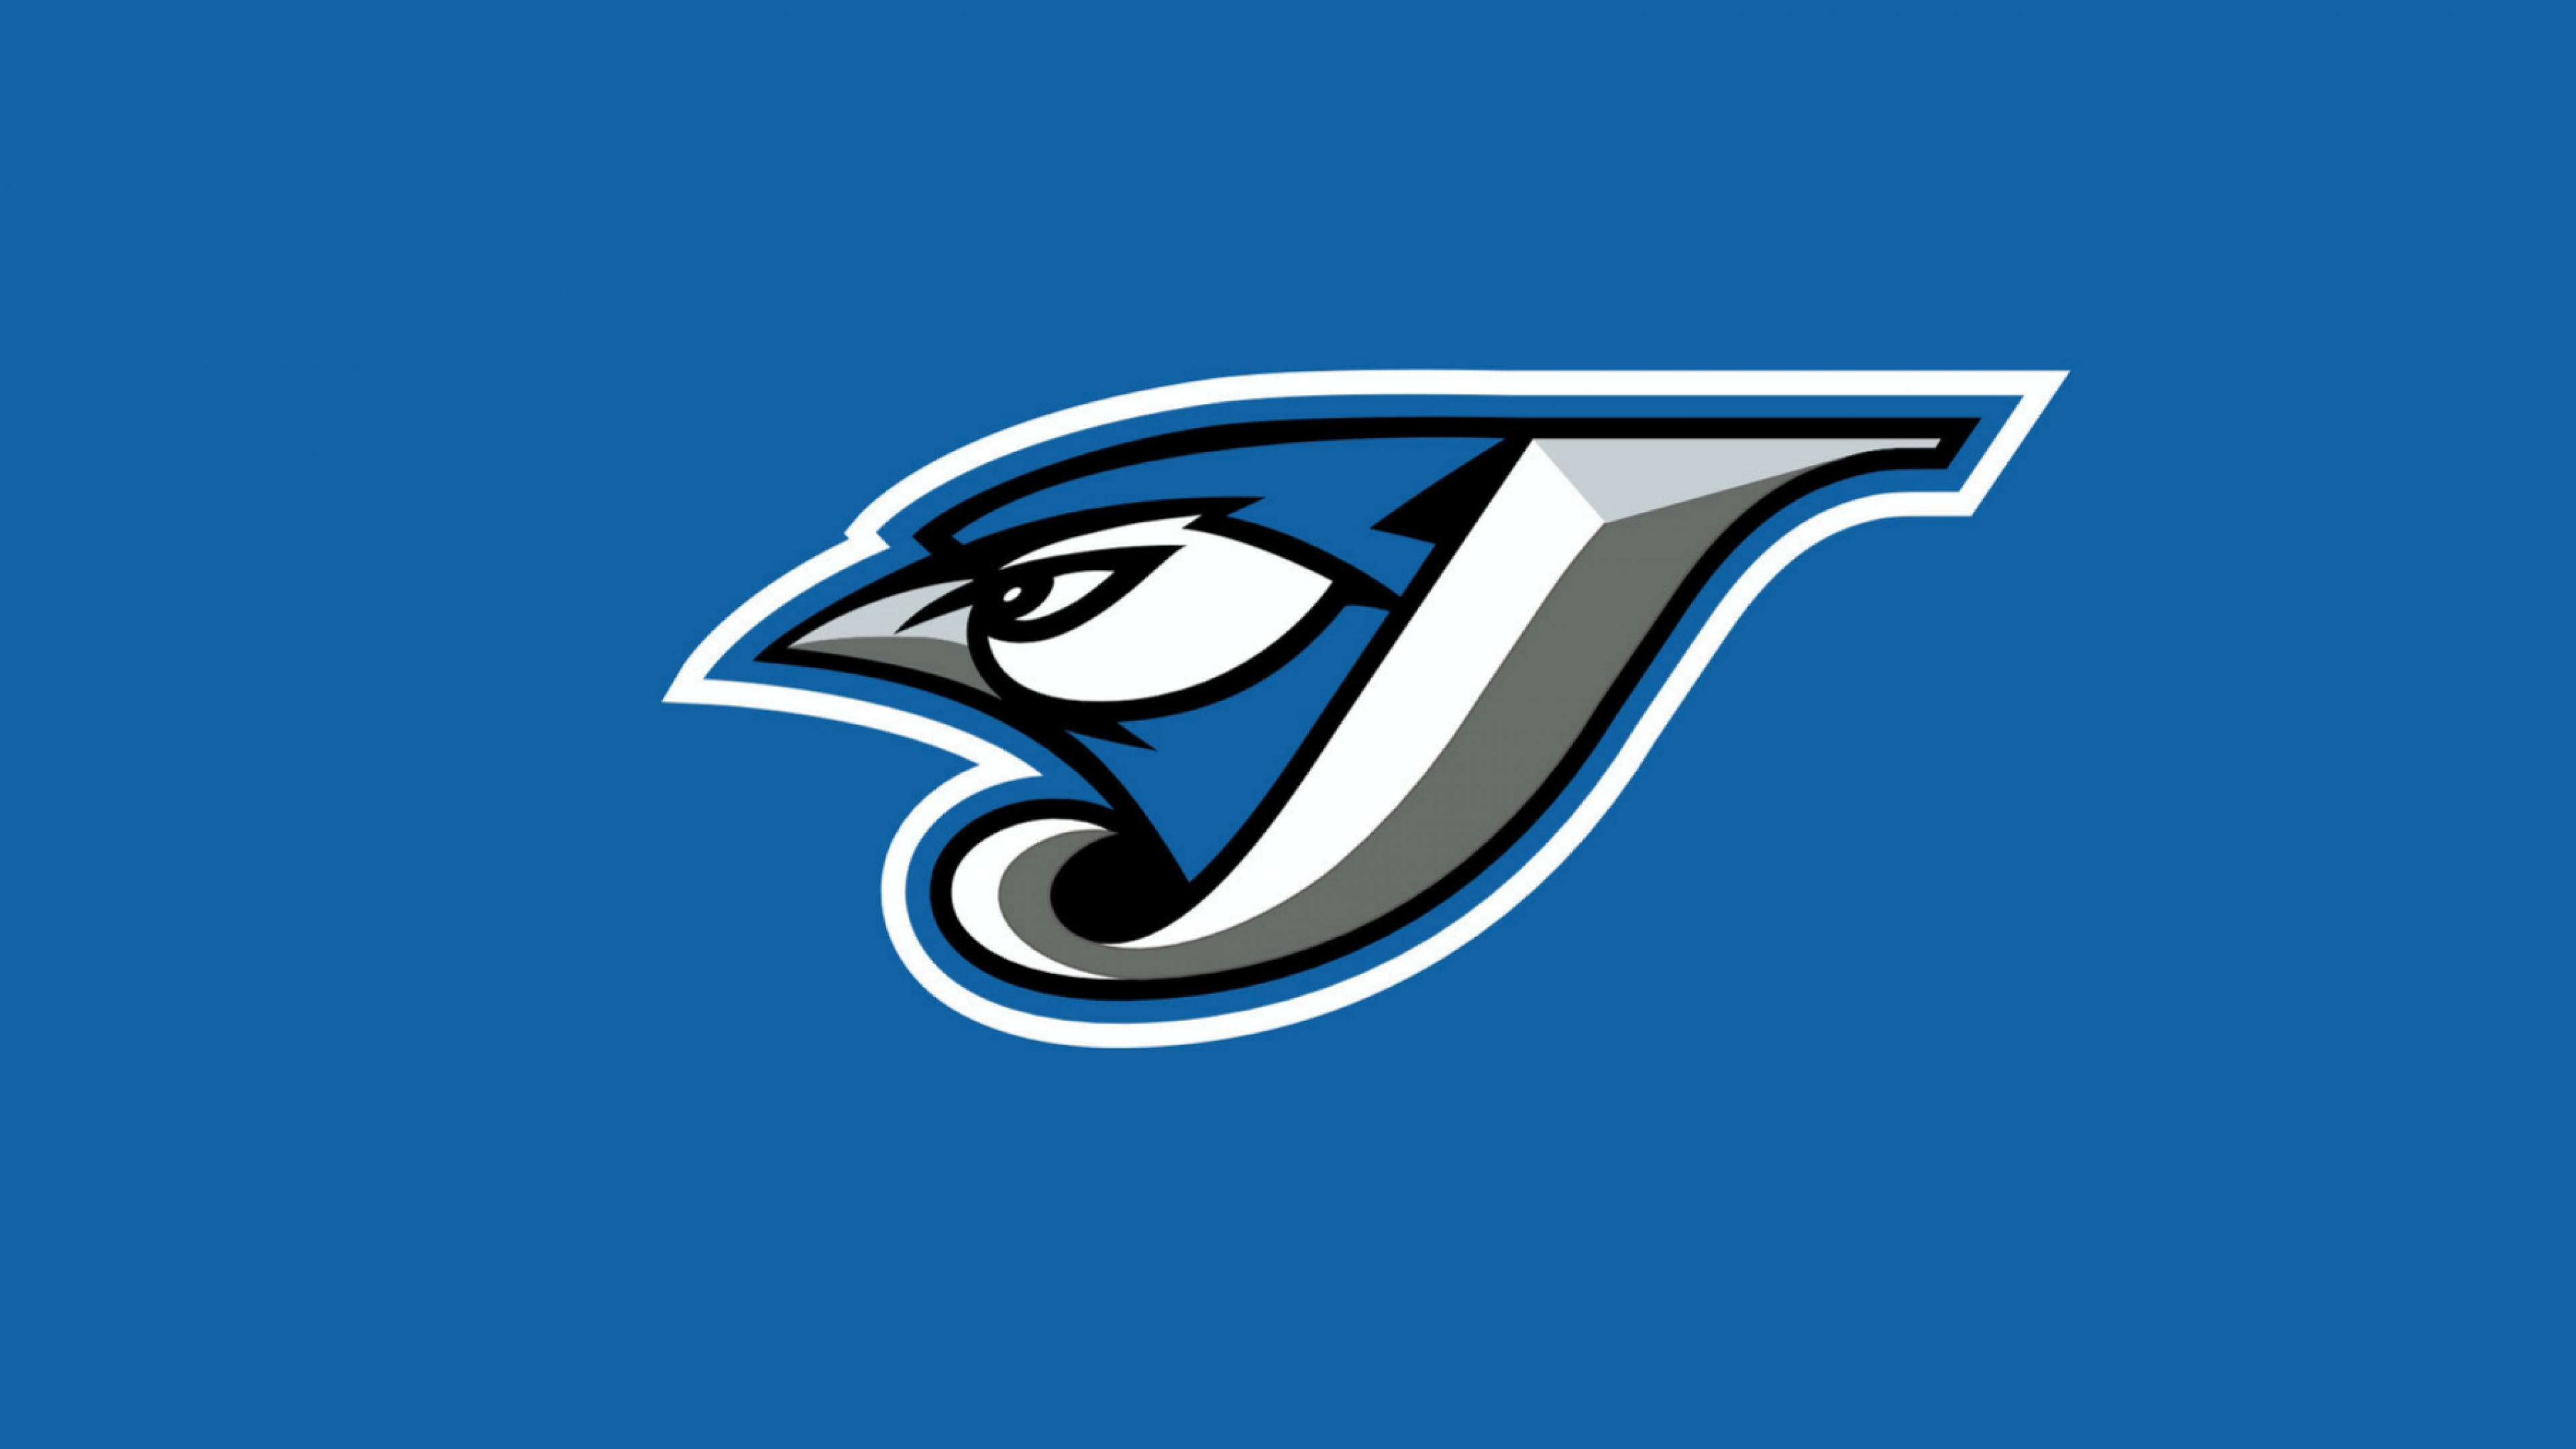 Toronto Blue Jays Iphone Wallpaper Posted By Ethan Simpson